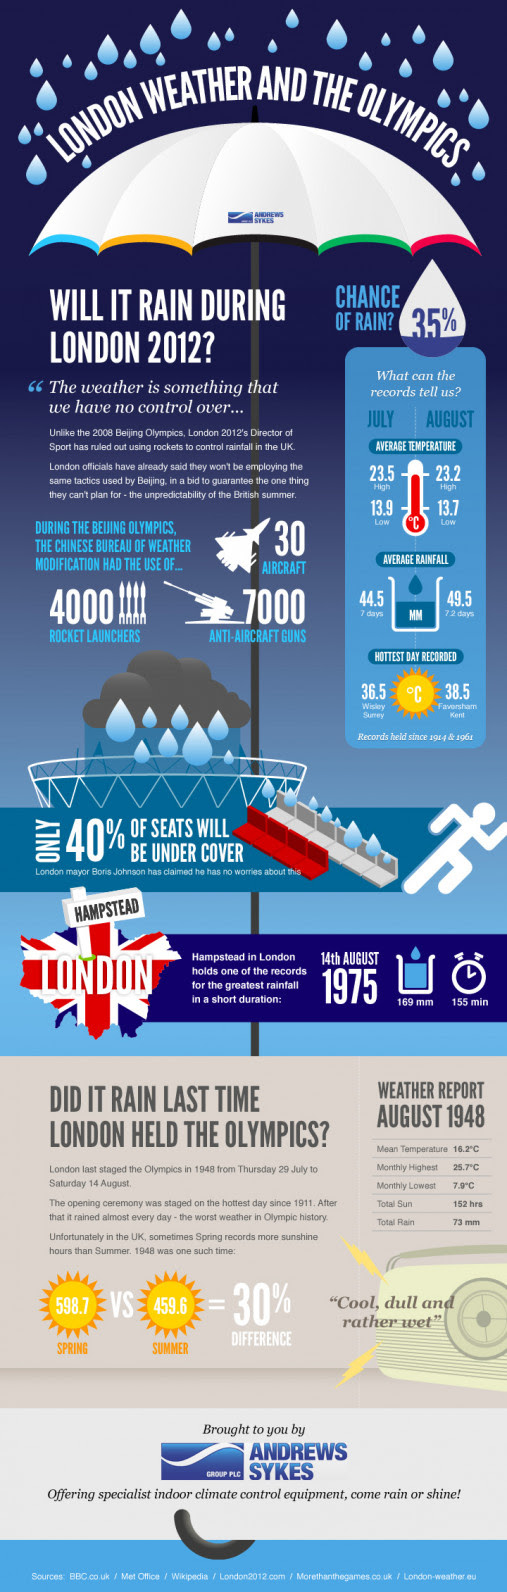 Will the weather hold out during London Olympics 2012?